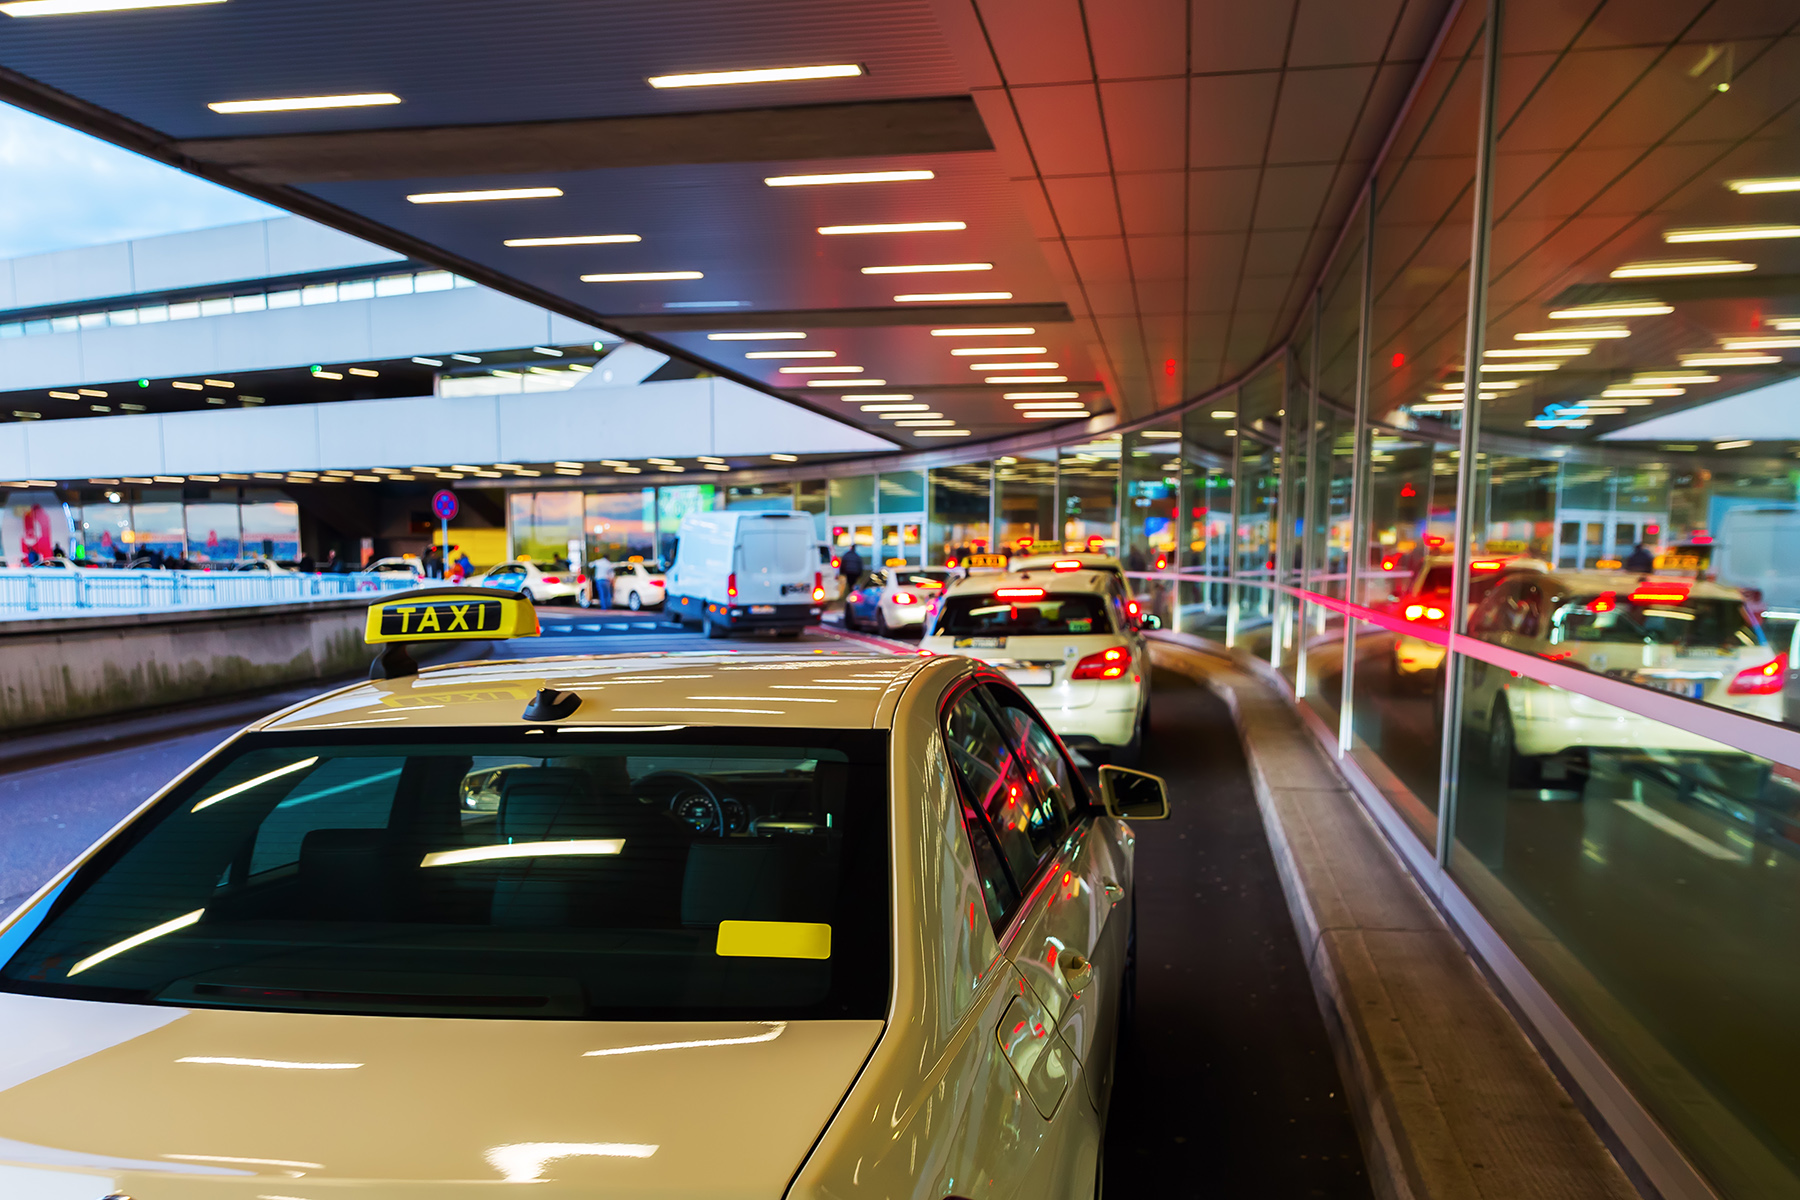 Taxi cabs at Cologne Airport